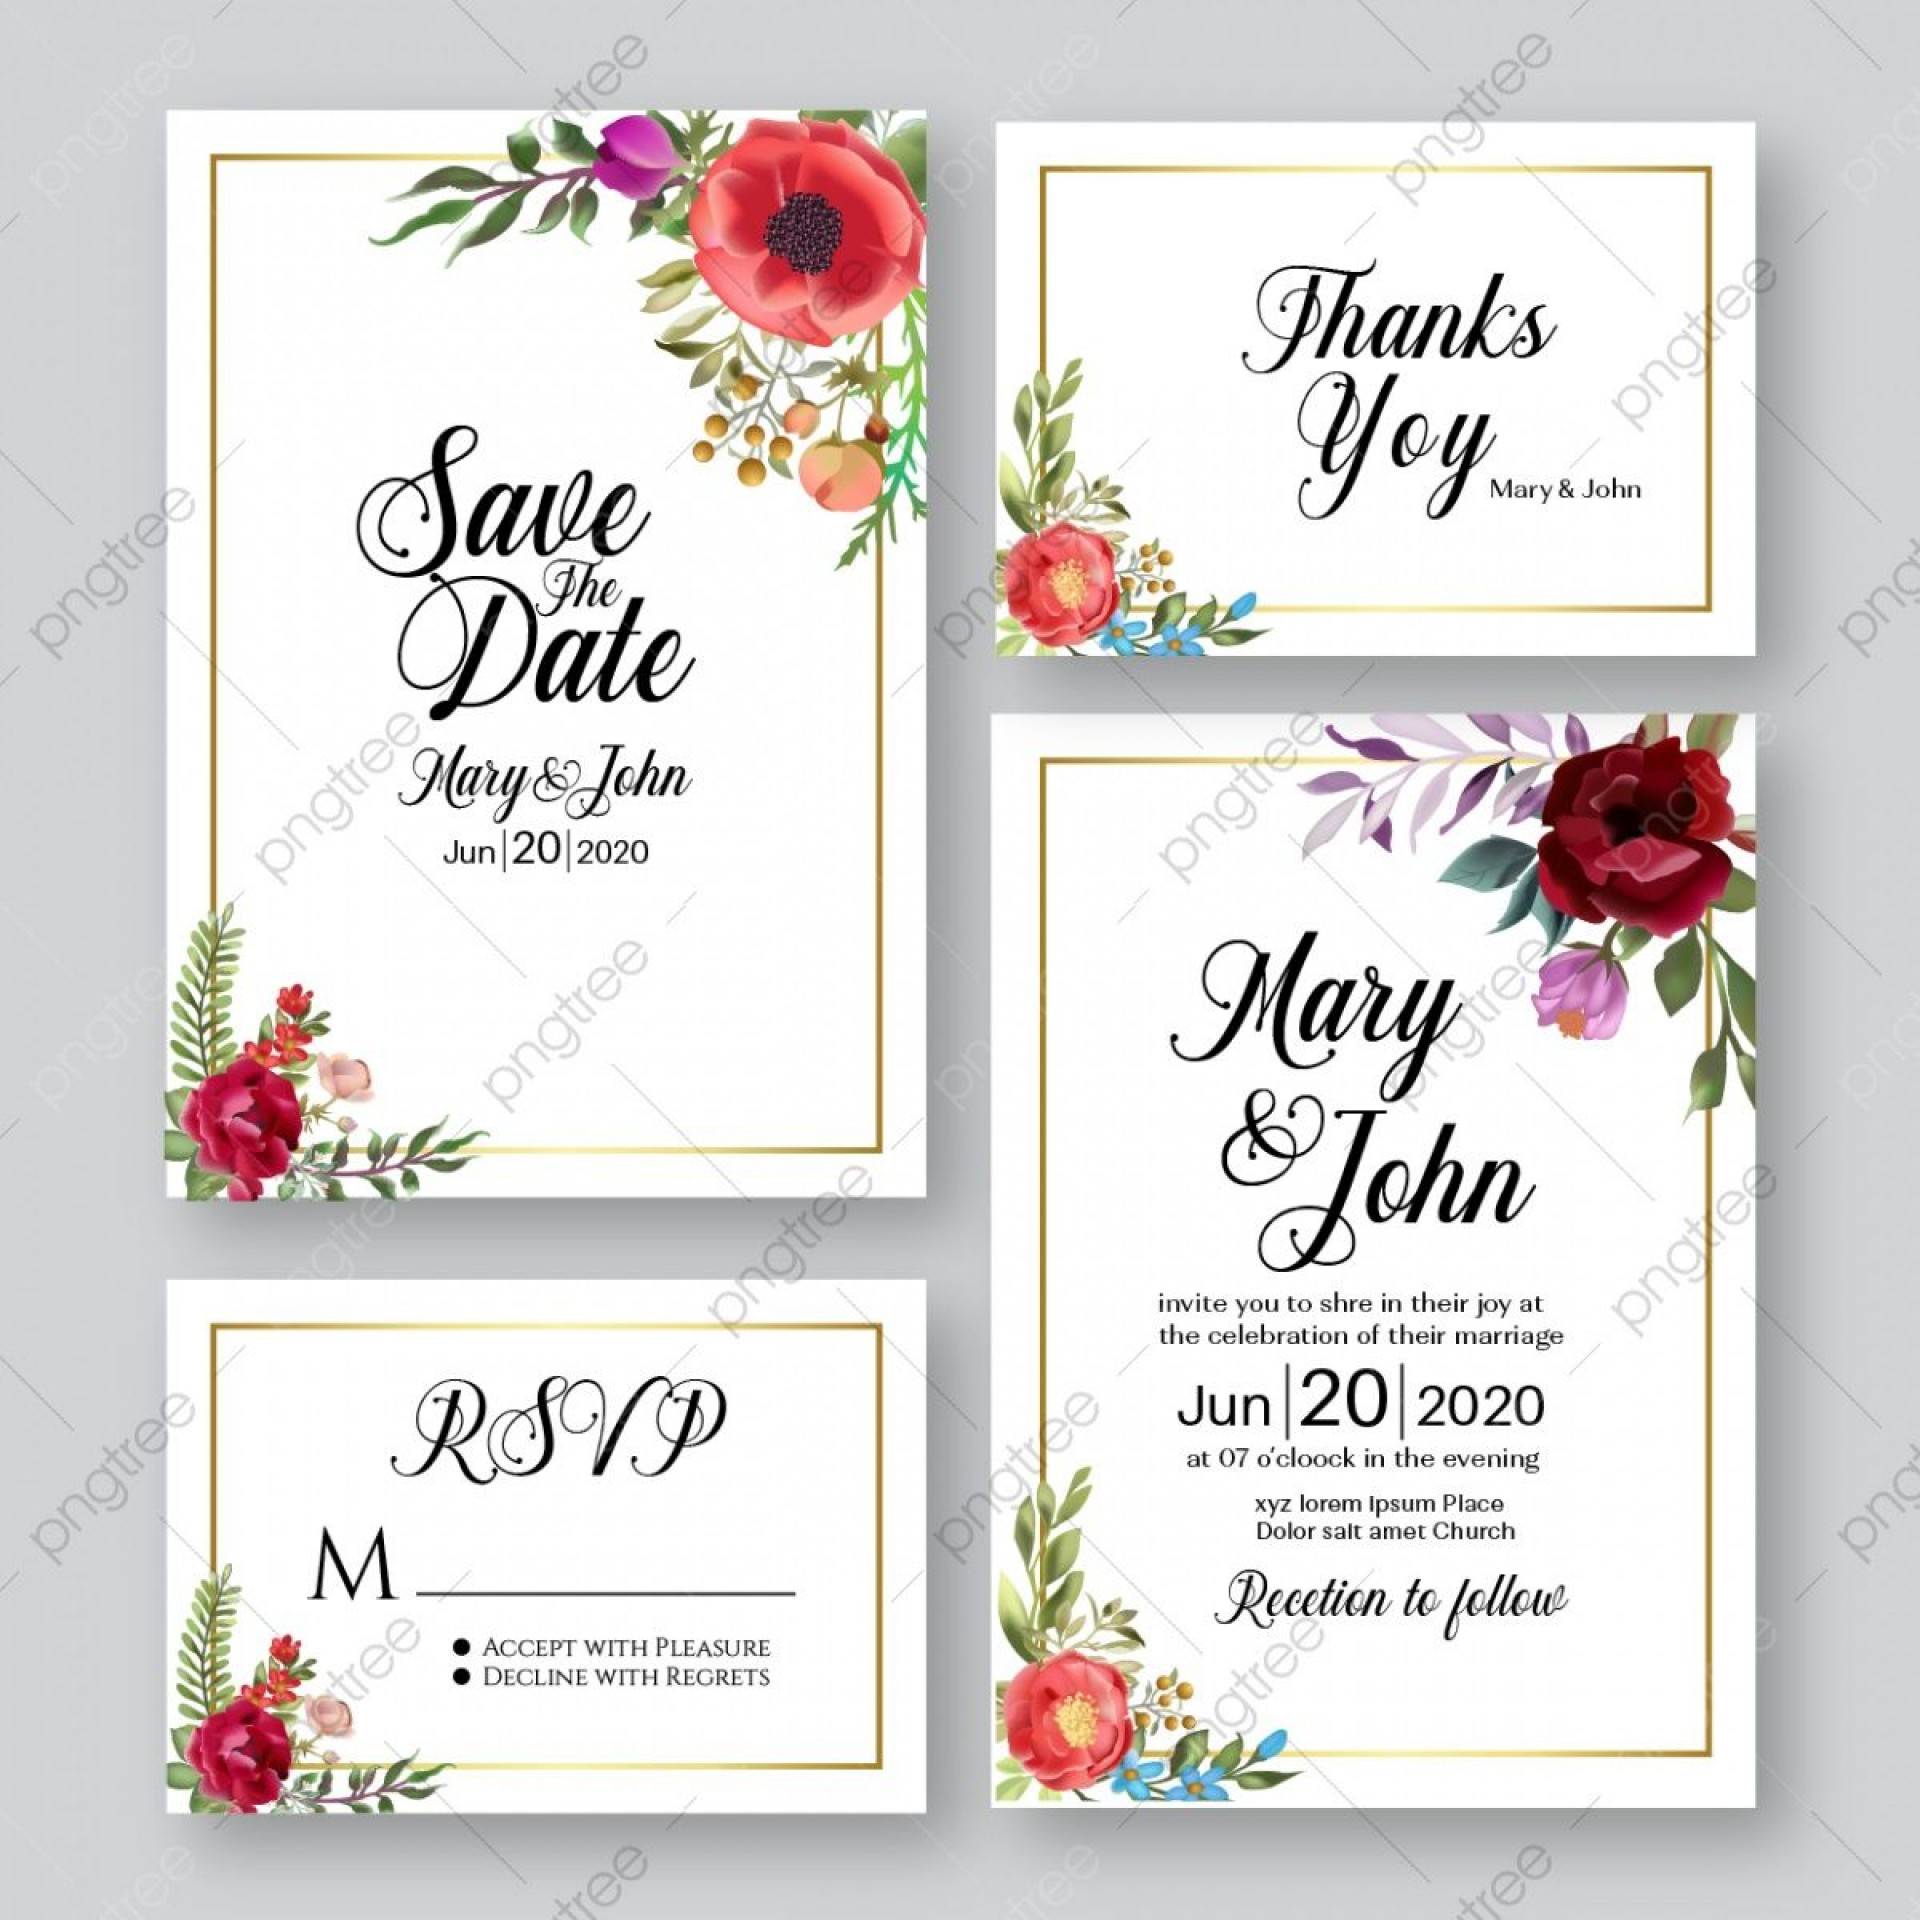 008 Breathtaking Free Download Invitation Card Format Design  Marriage In Word Psd Wedding1920